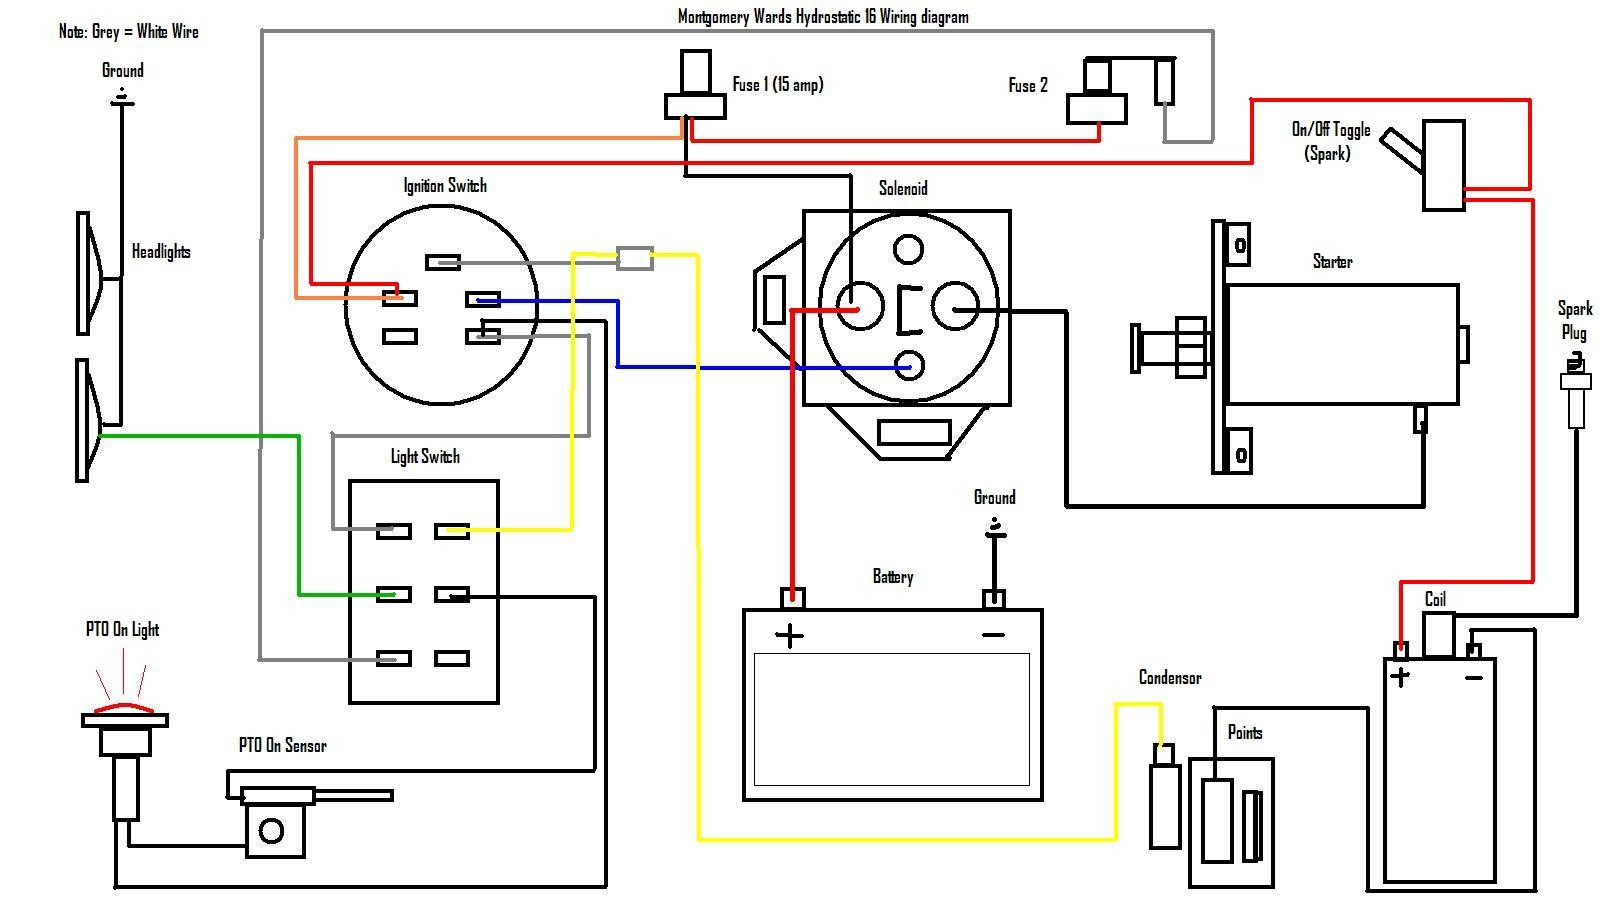 Briggs Starter Wiring Residential Electrical Symbols \u2022 11 HP Briggs  And Stratton Engine Diagram Briggs Stratton Electric Start Wiring Diagram